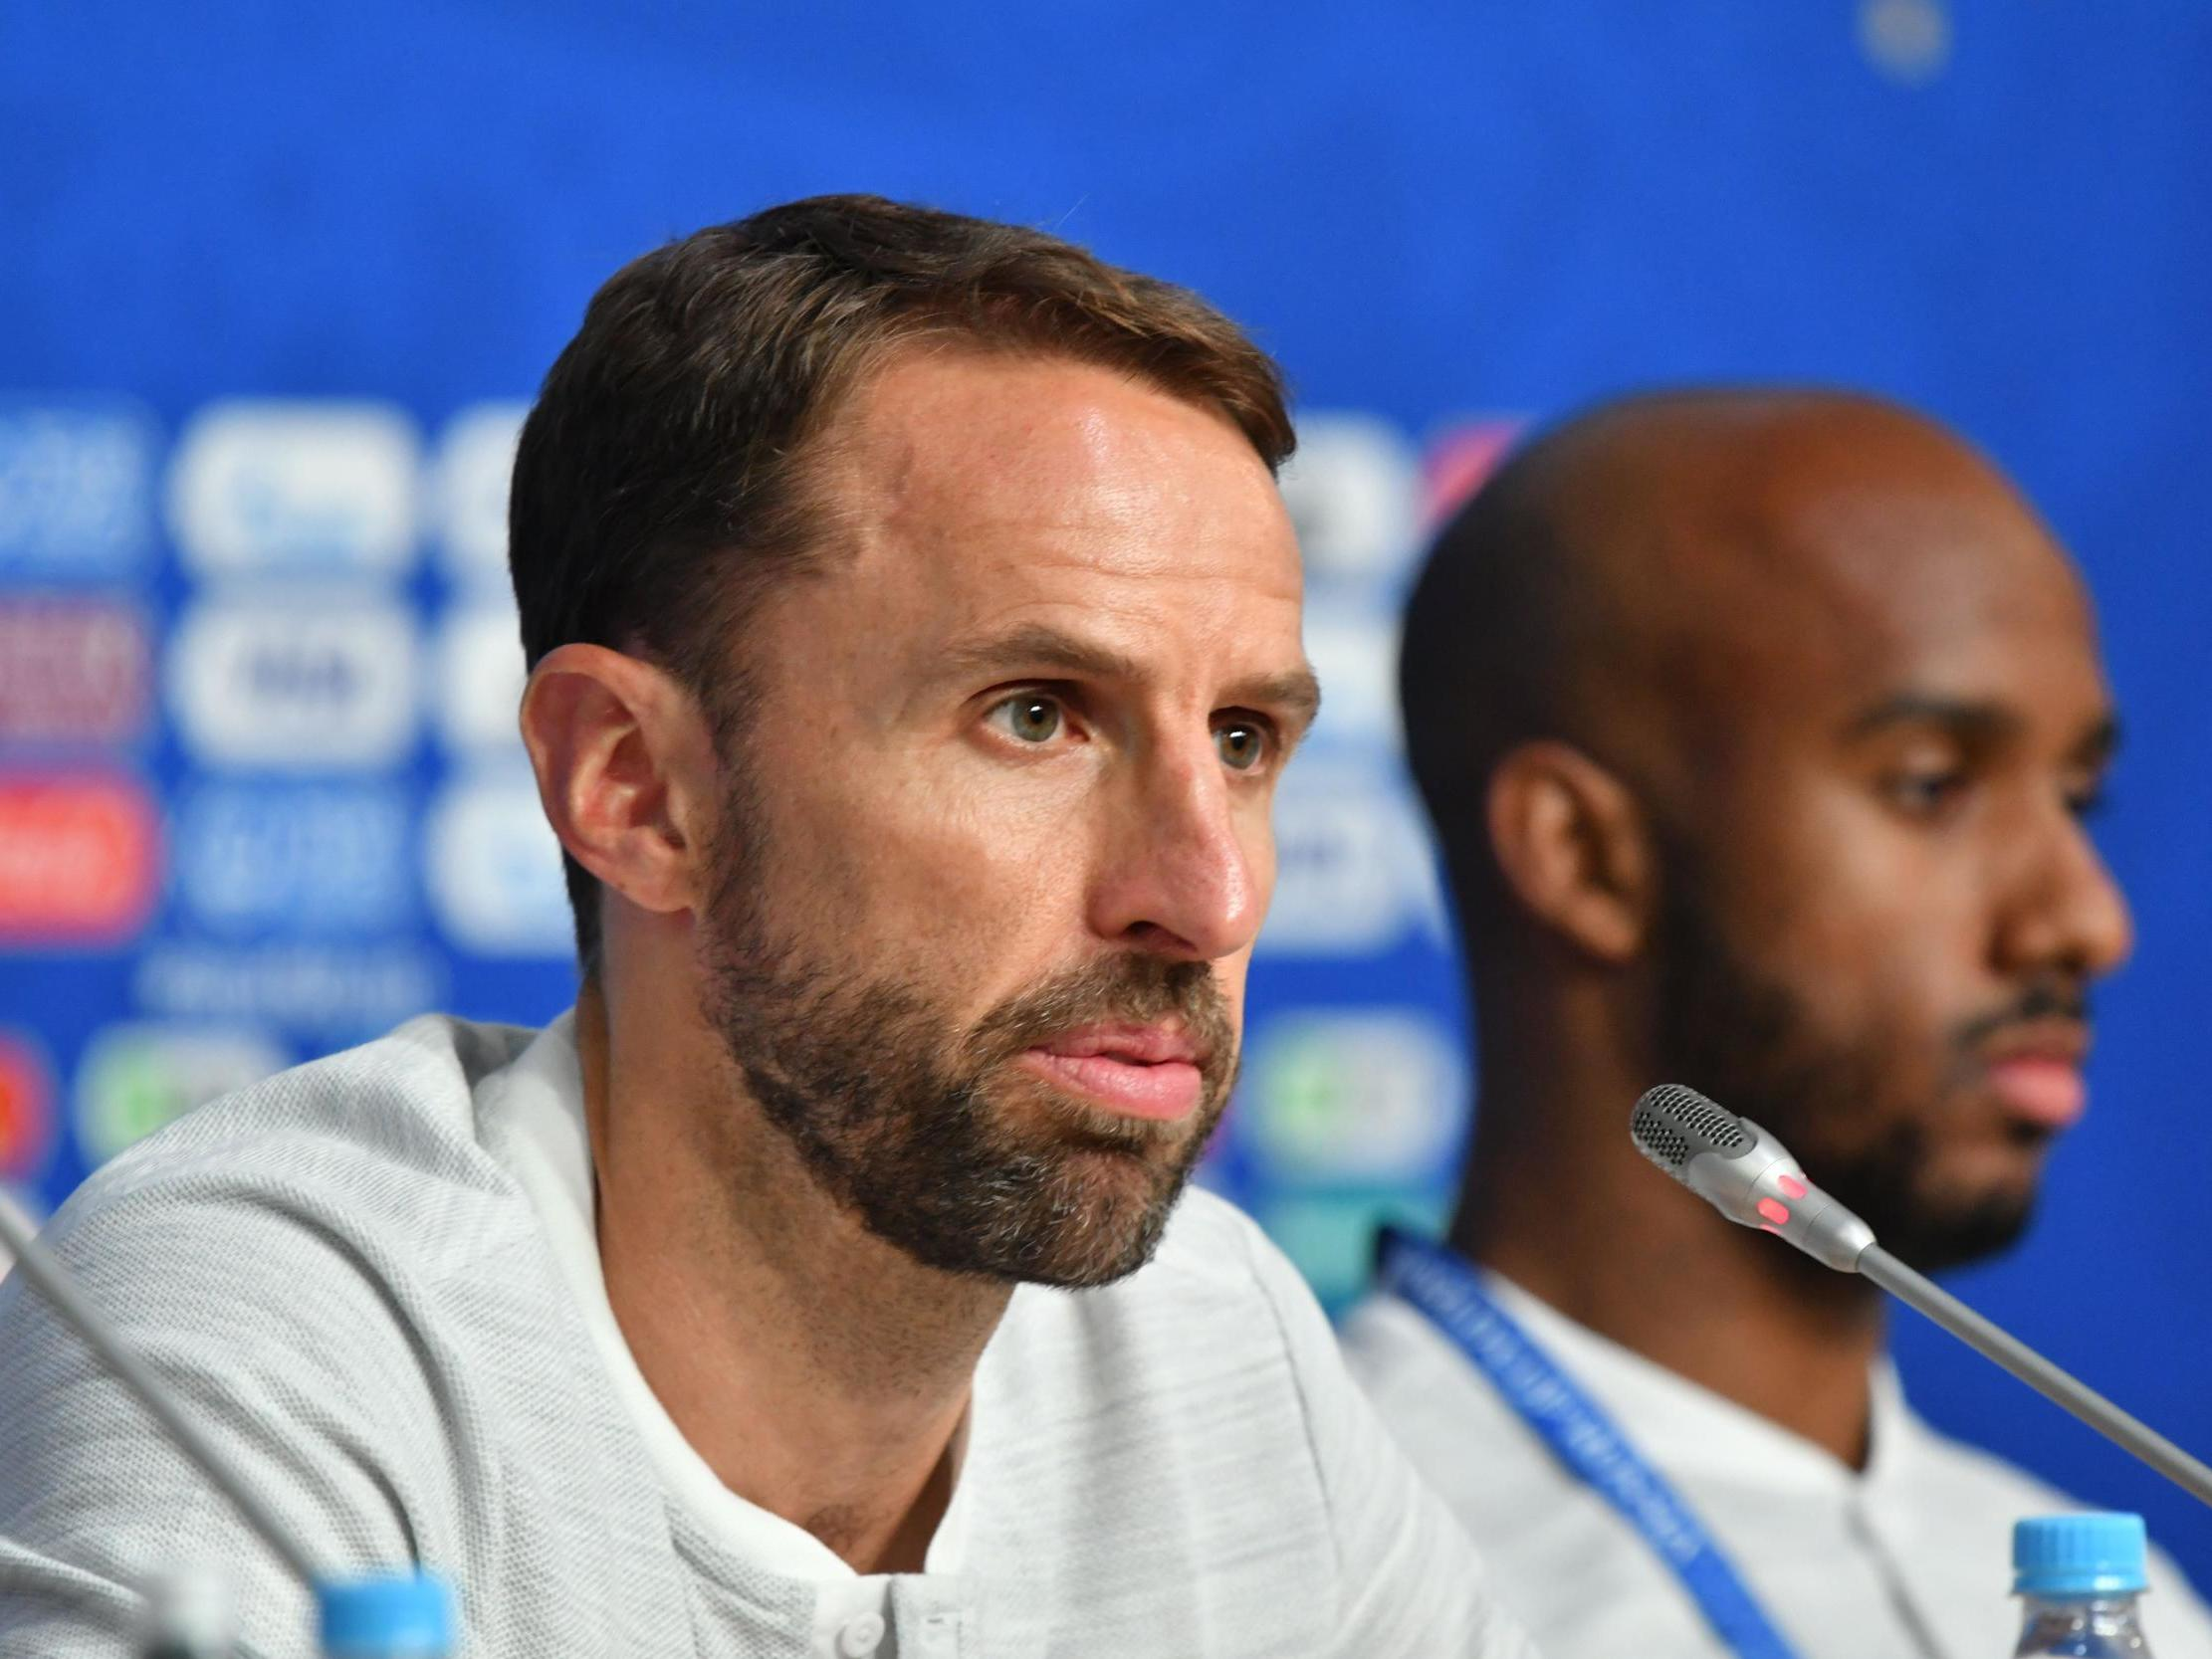 World Cup 2018: England semi-final success reminds Gareth Southgate of Germany's own bright beginnings